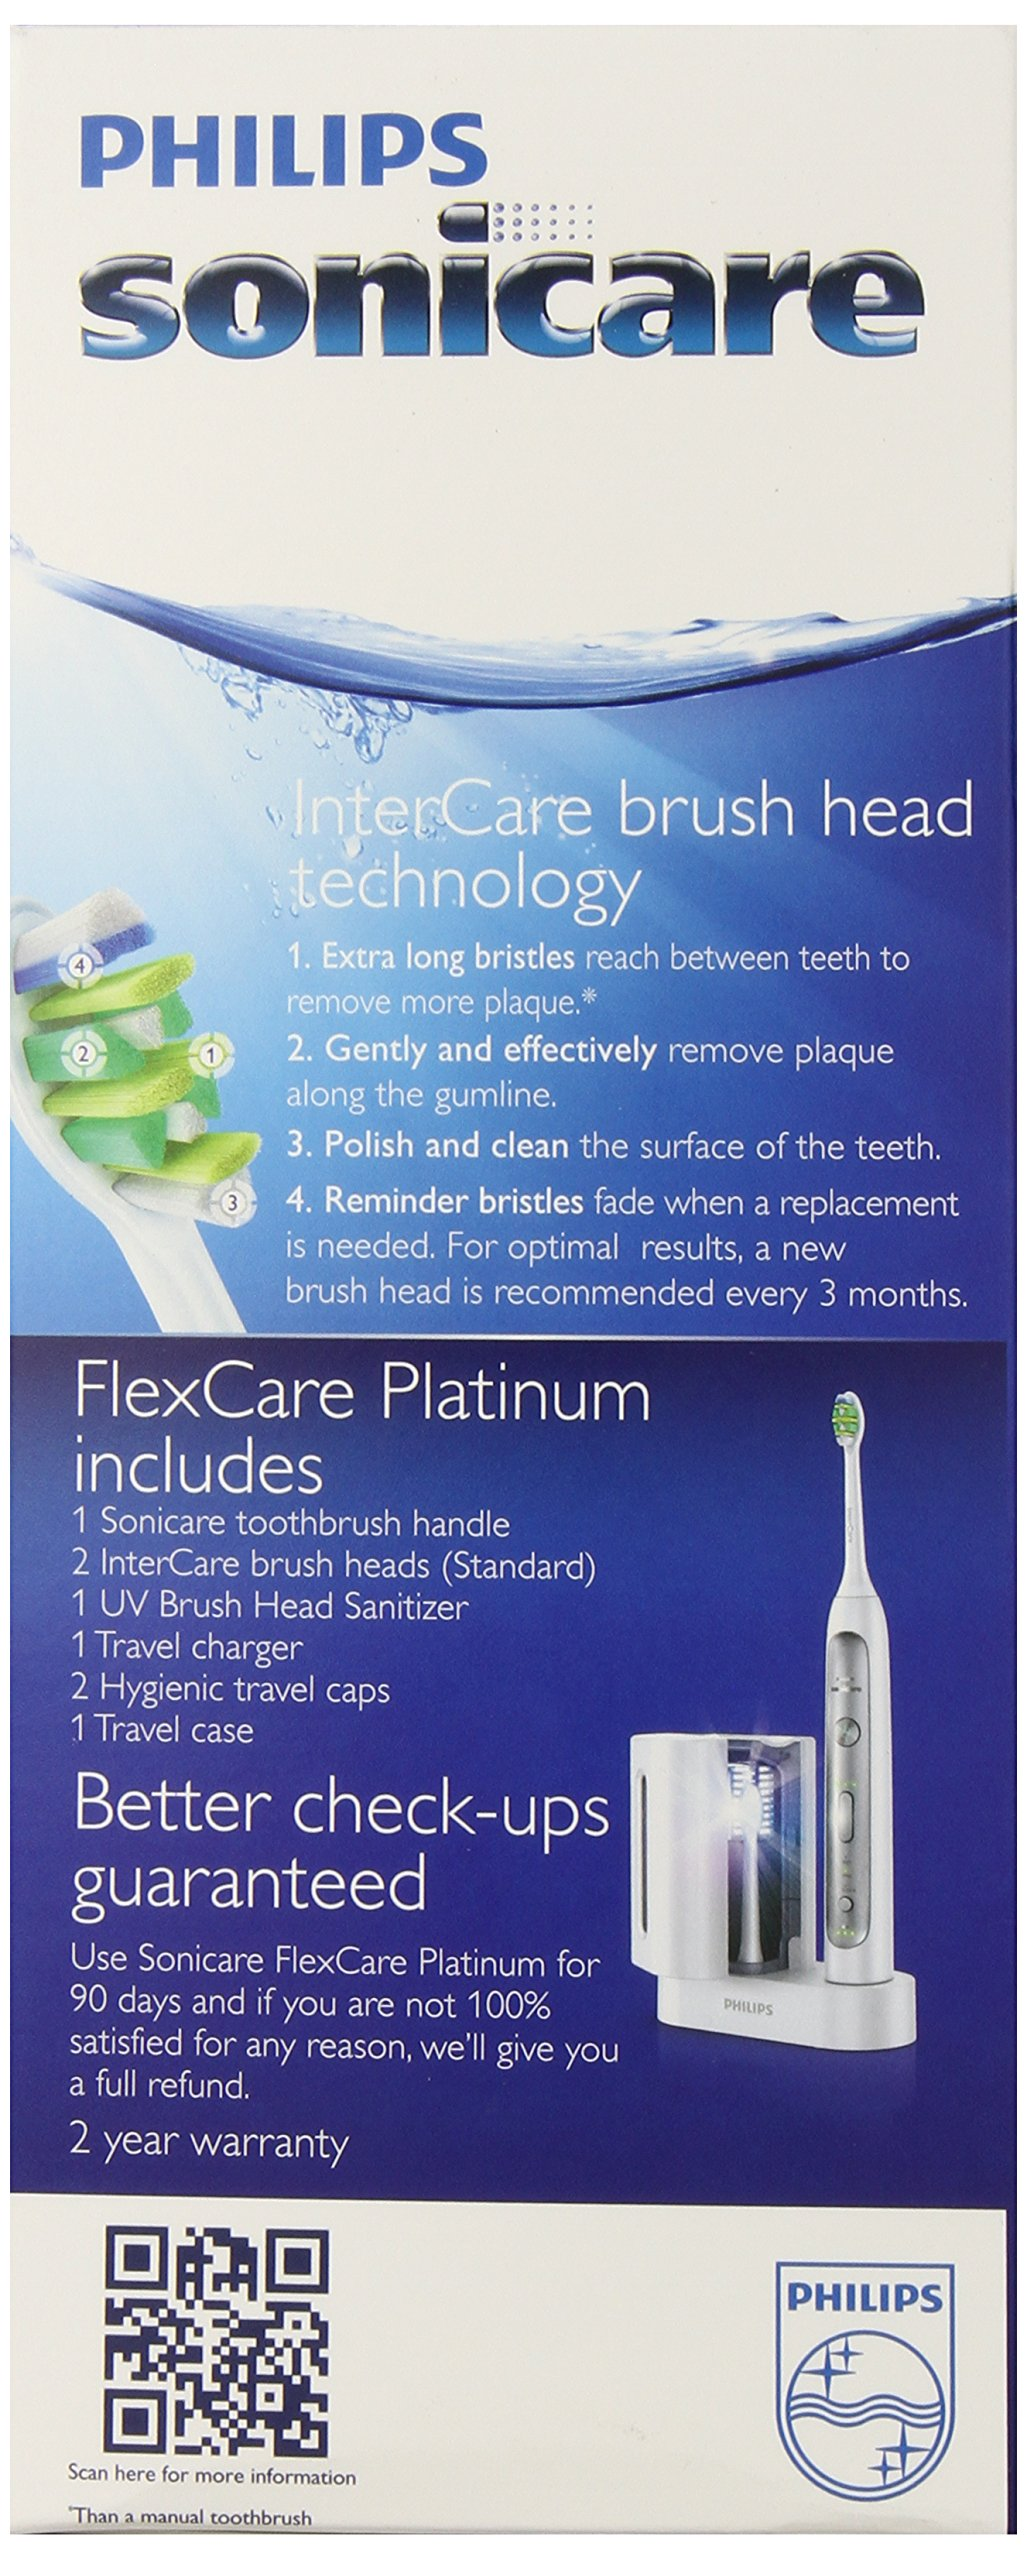 Philips Sonicare Flexcare Platinum Rechargeable Electric Toothbrush with UV Sanitizer, Model HX9170/10 by Philips Sonicare (Image #4)